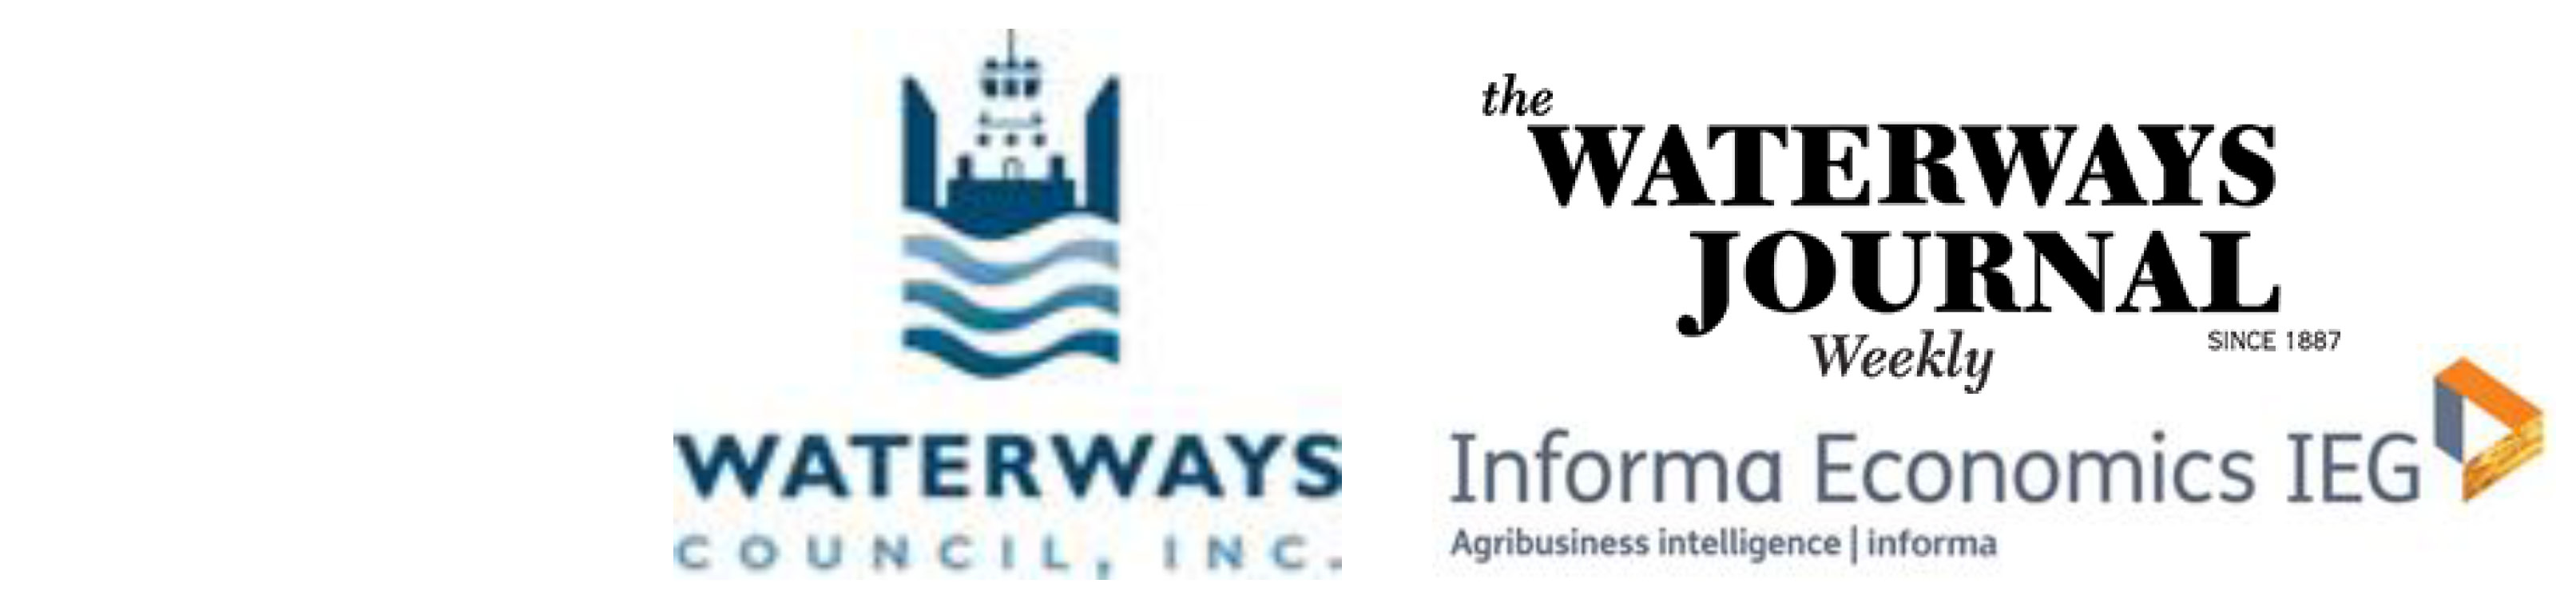 15th Annual Waterways Symposium - WCI Annual Conference